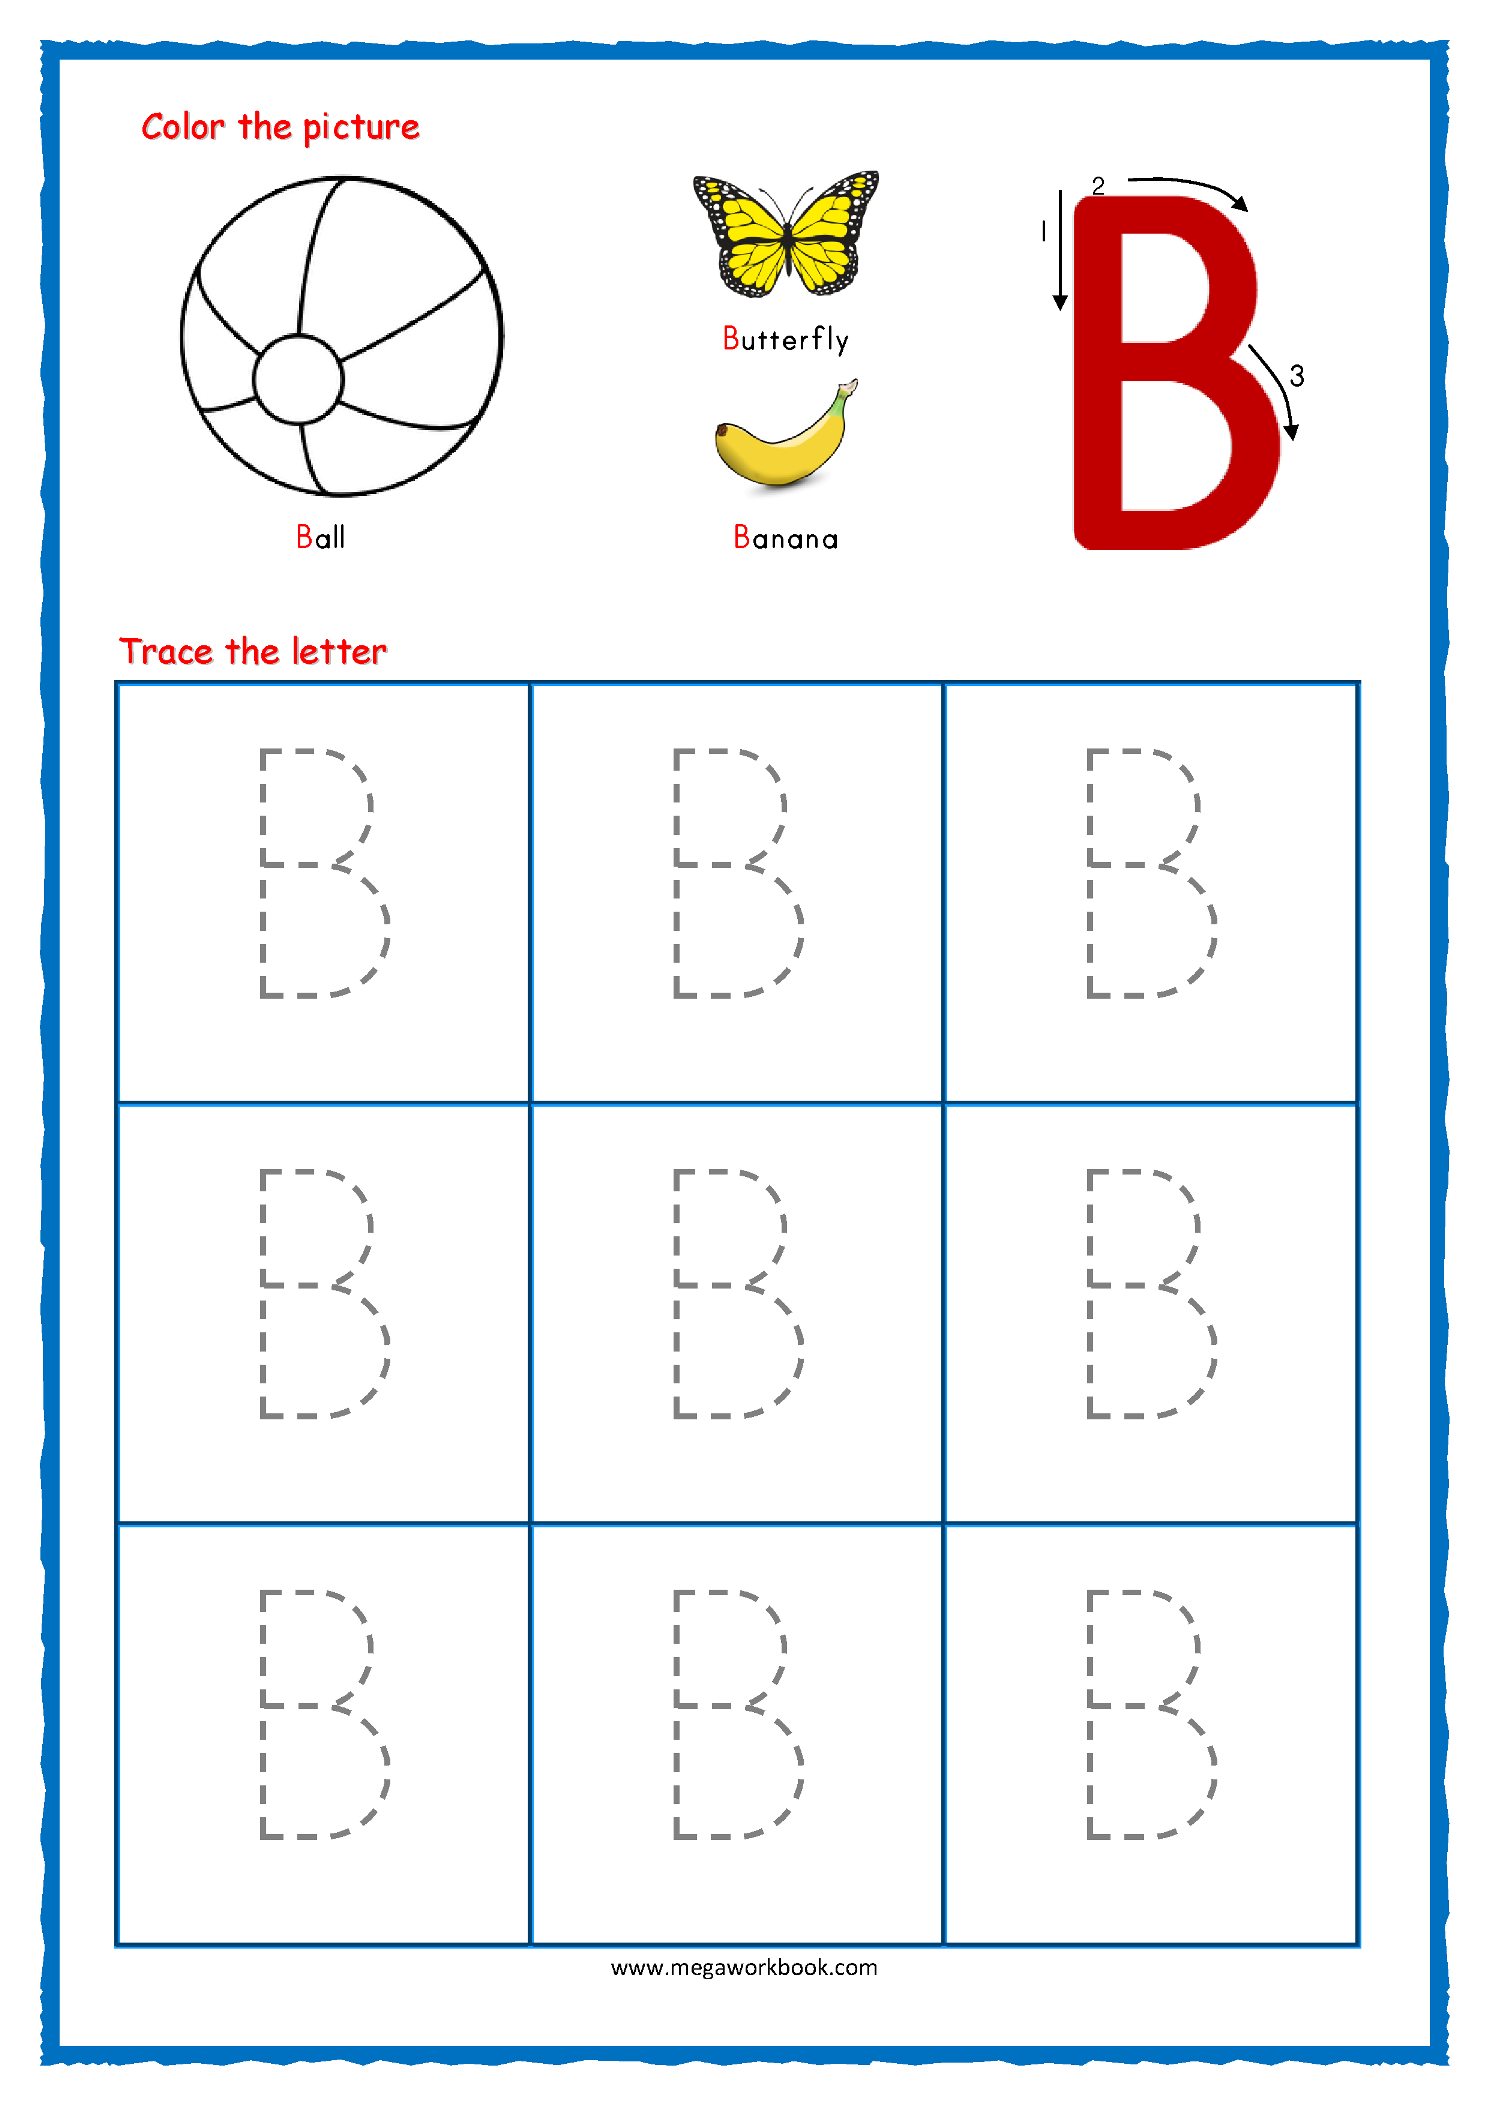 Coloring Book : Letter Tracingts Free Printable Coloring for Letter Tracing Worksheets Doc